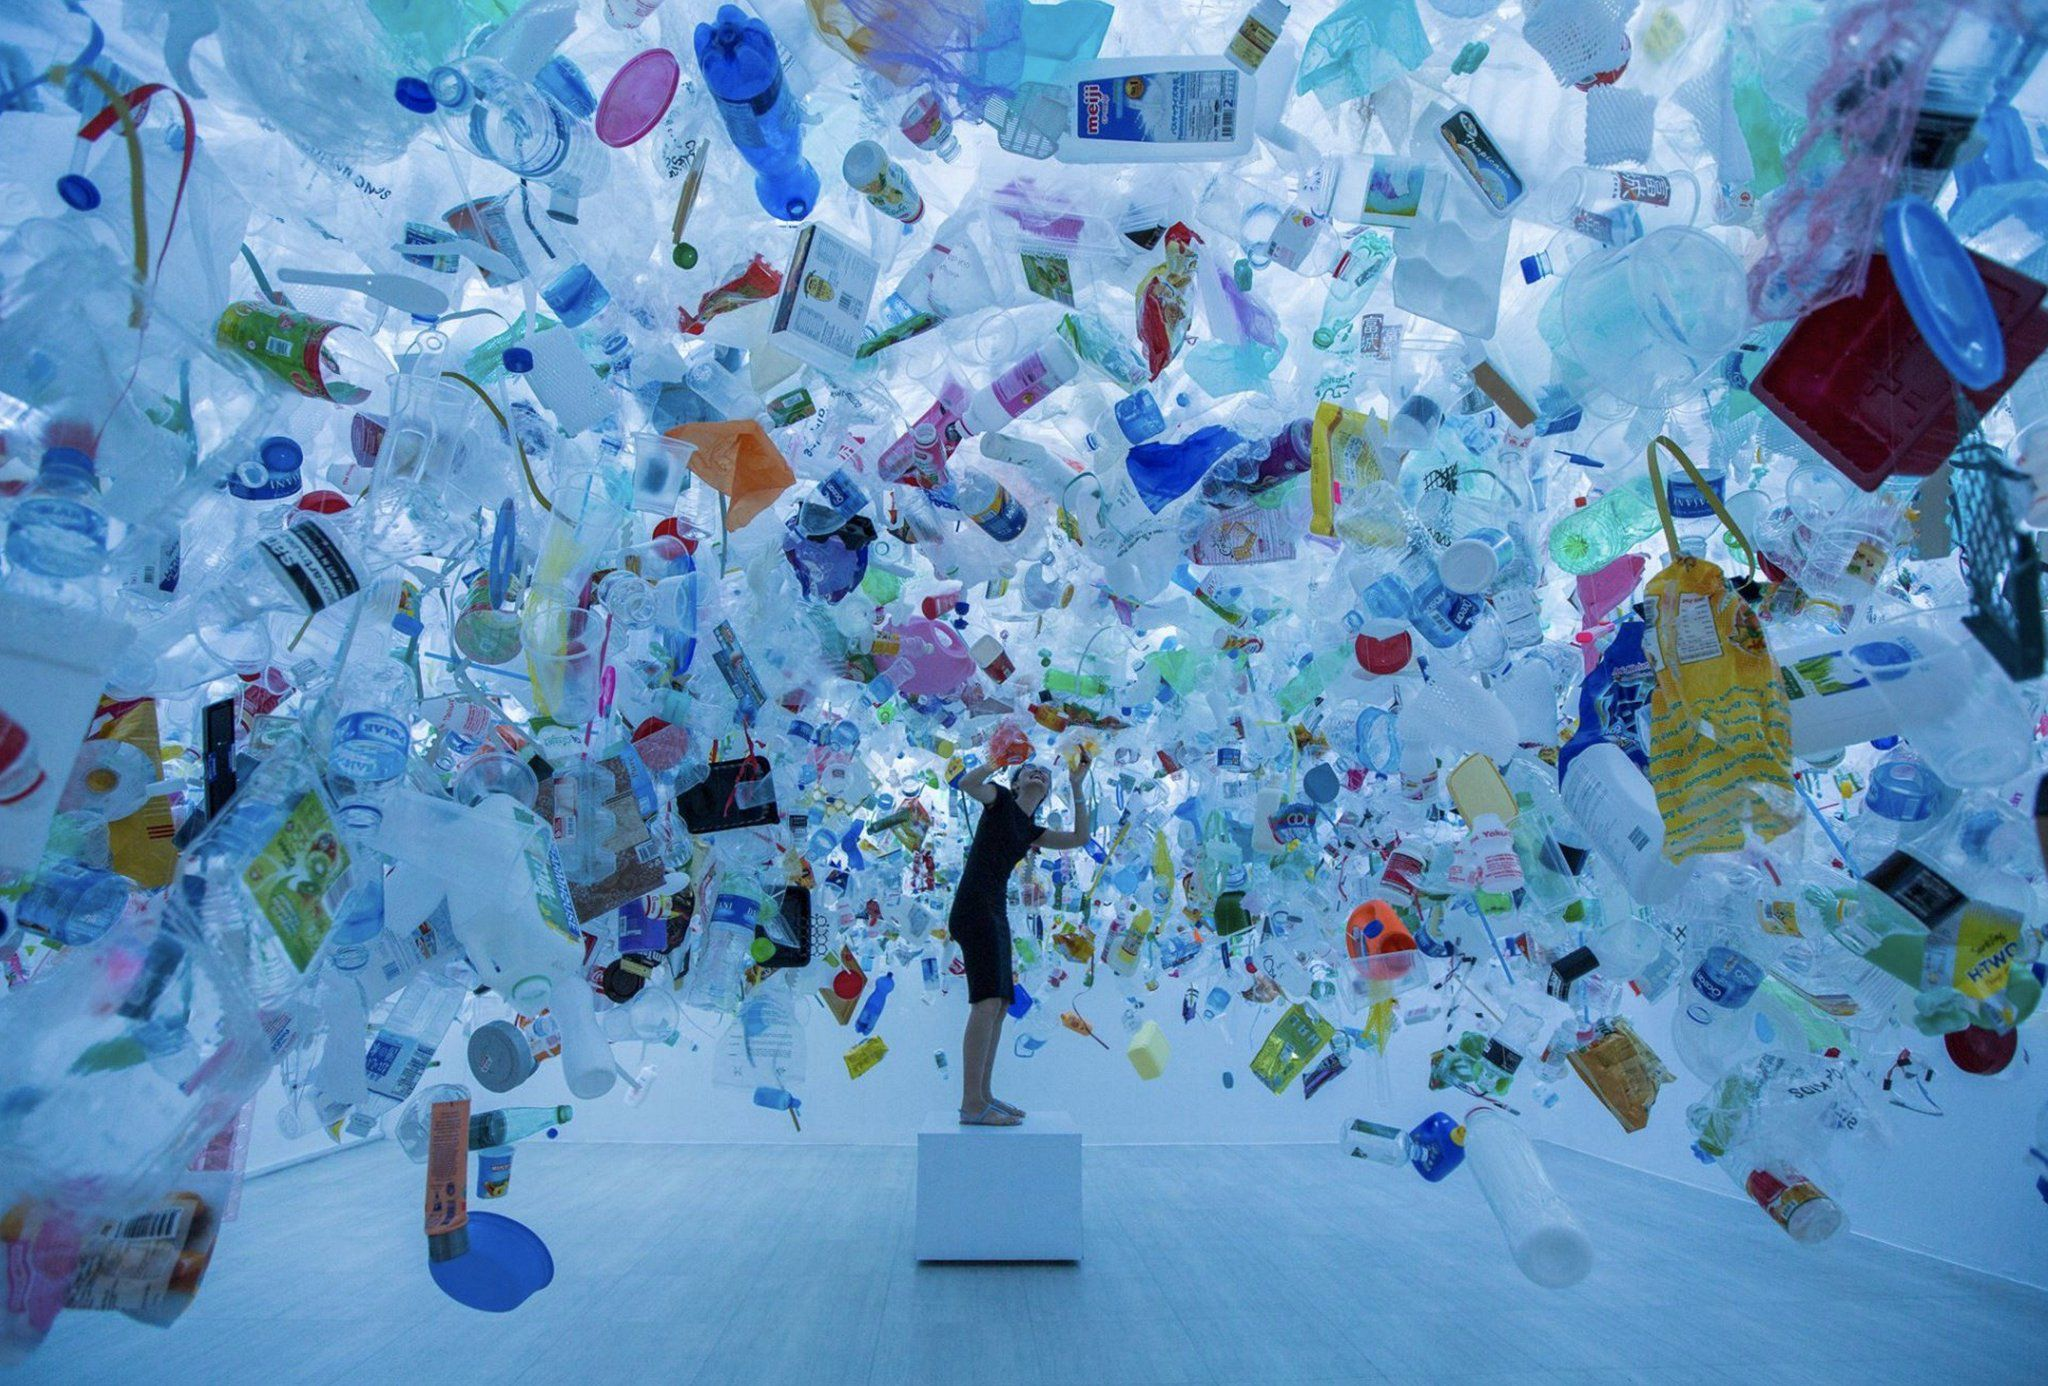 The overwhelming scale of the single-use plastic problem